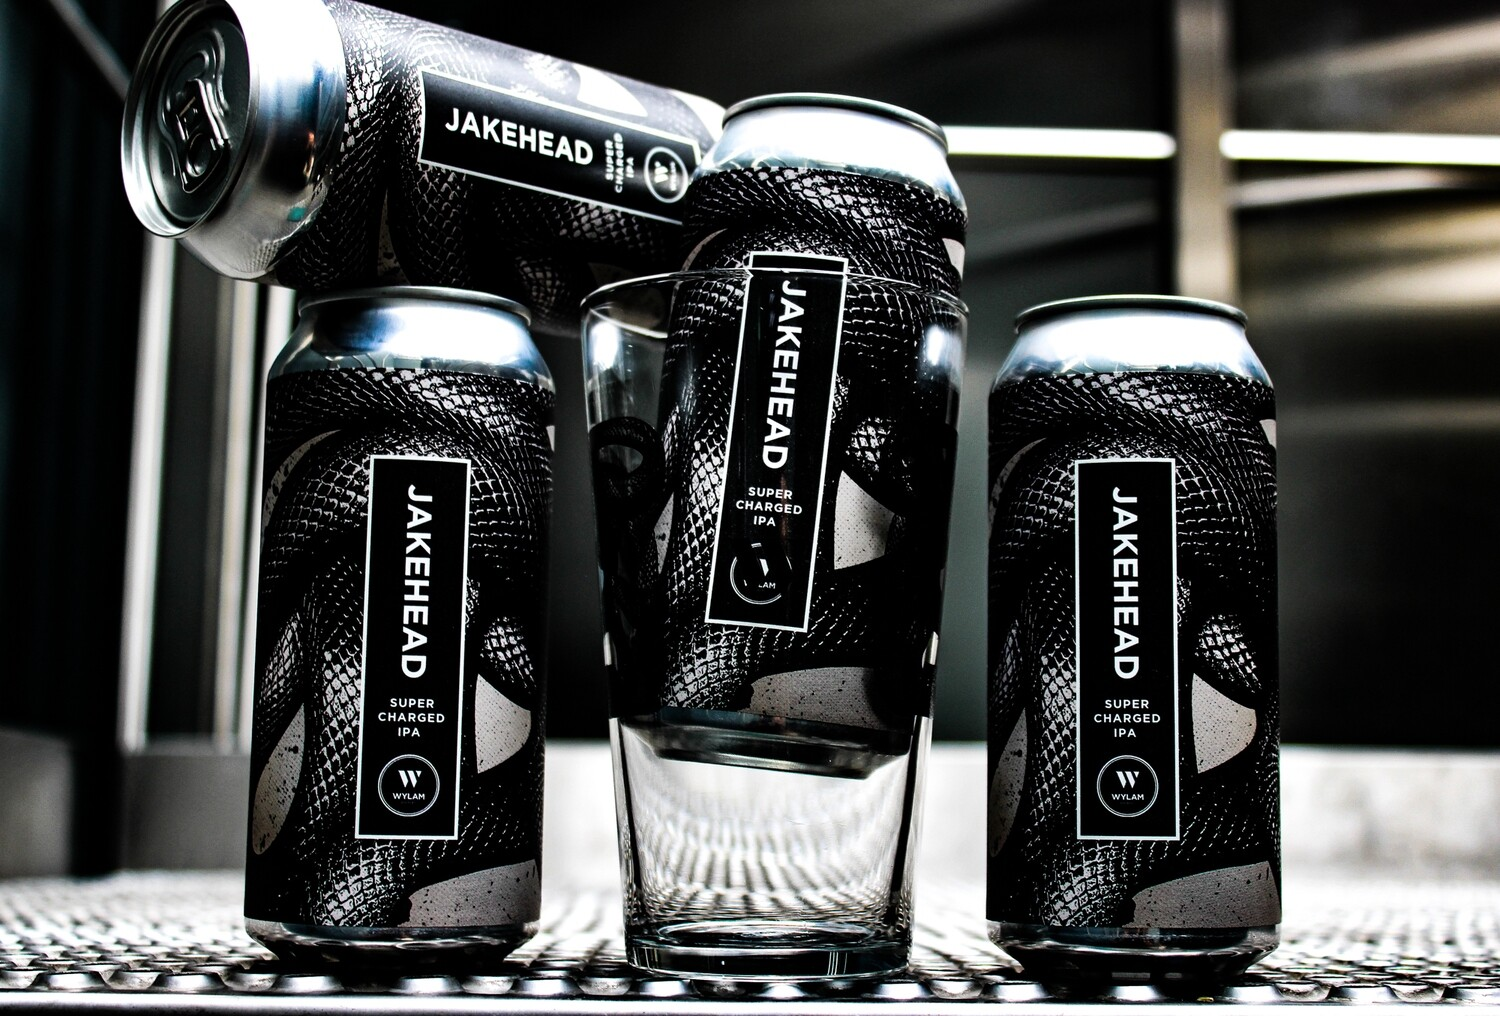 The Jakey Four Pack | 4 x 440ml Cans + 1 x Pint Glass